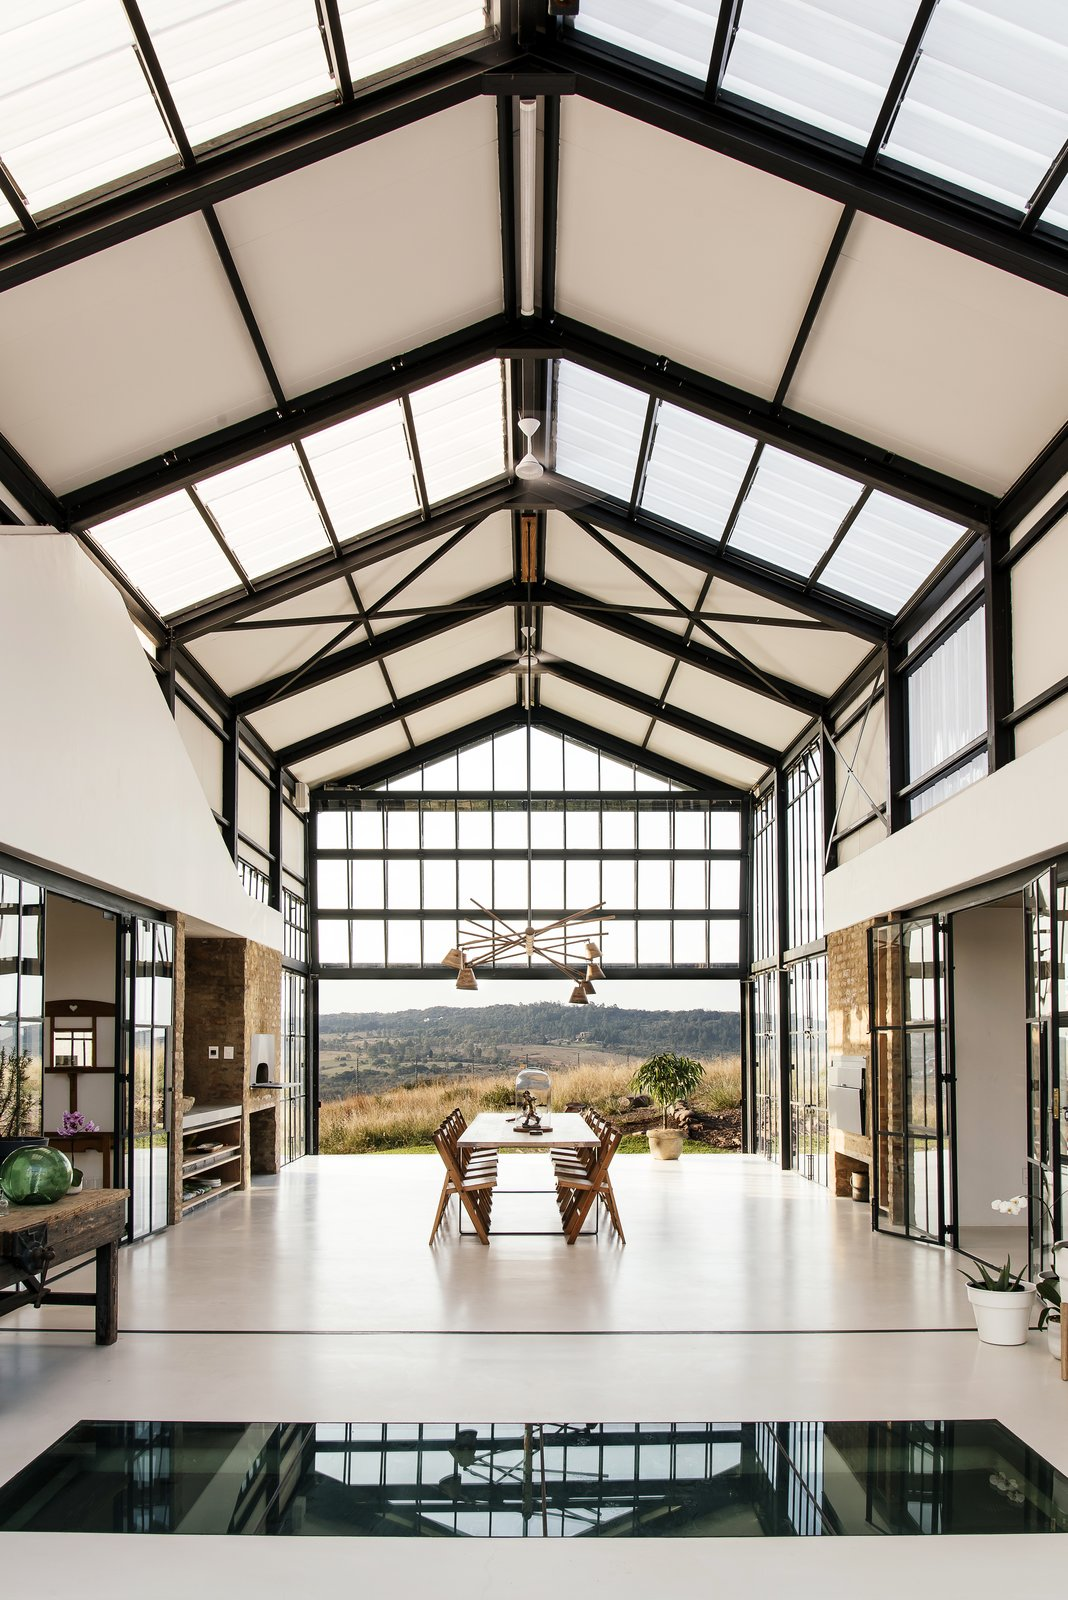 Dining, Table, Pendant, Concrete, Chair, Storage, Ceiling, and Shelves The wine cellar can be seen through the glass section of the floor.  Dining Concrete Table Ceiling Shelves Photos from A South African Architect Designs an Off-Grid, Modern Home For Her Parents